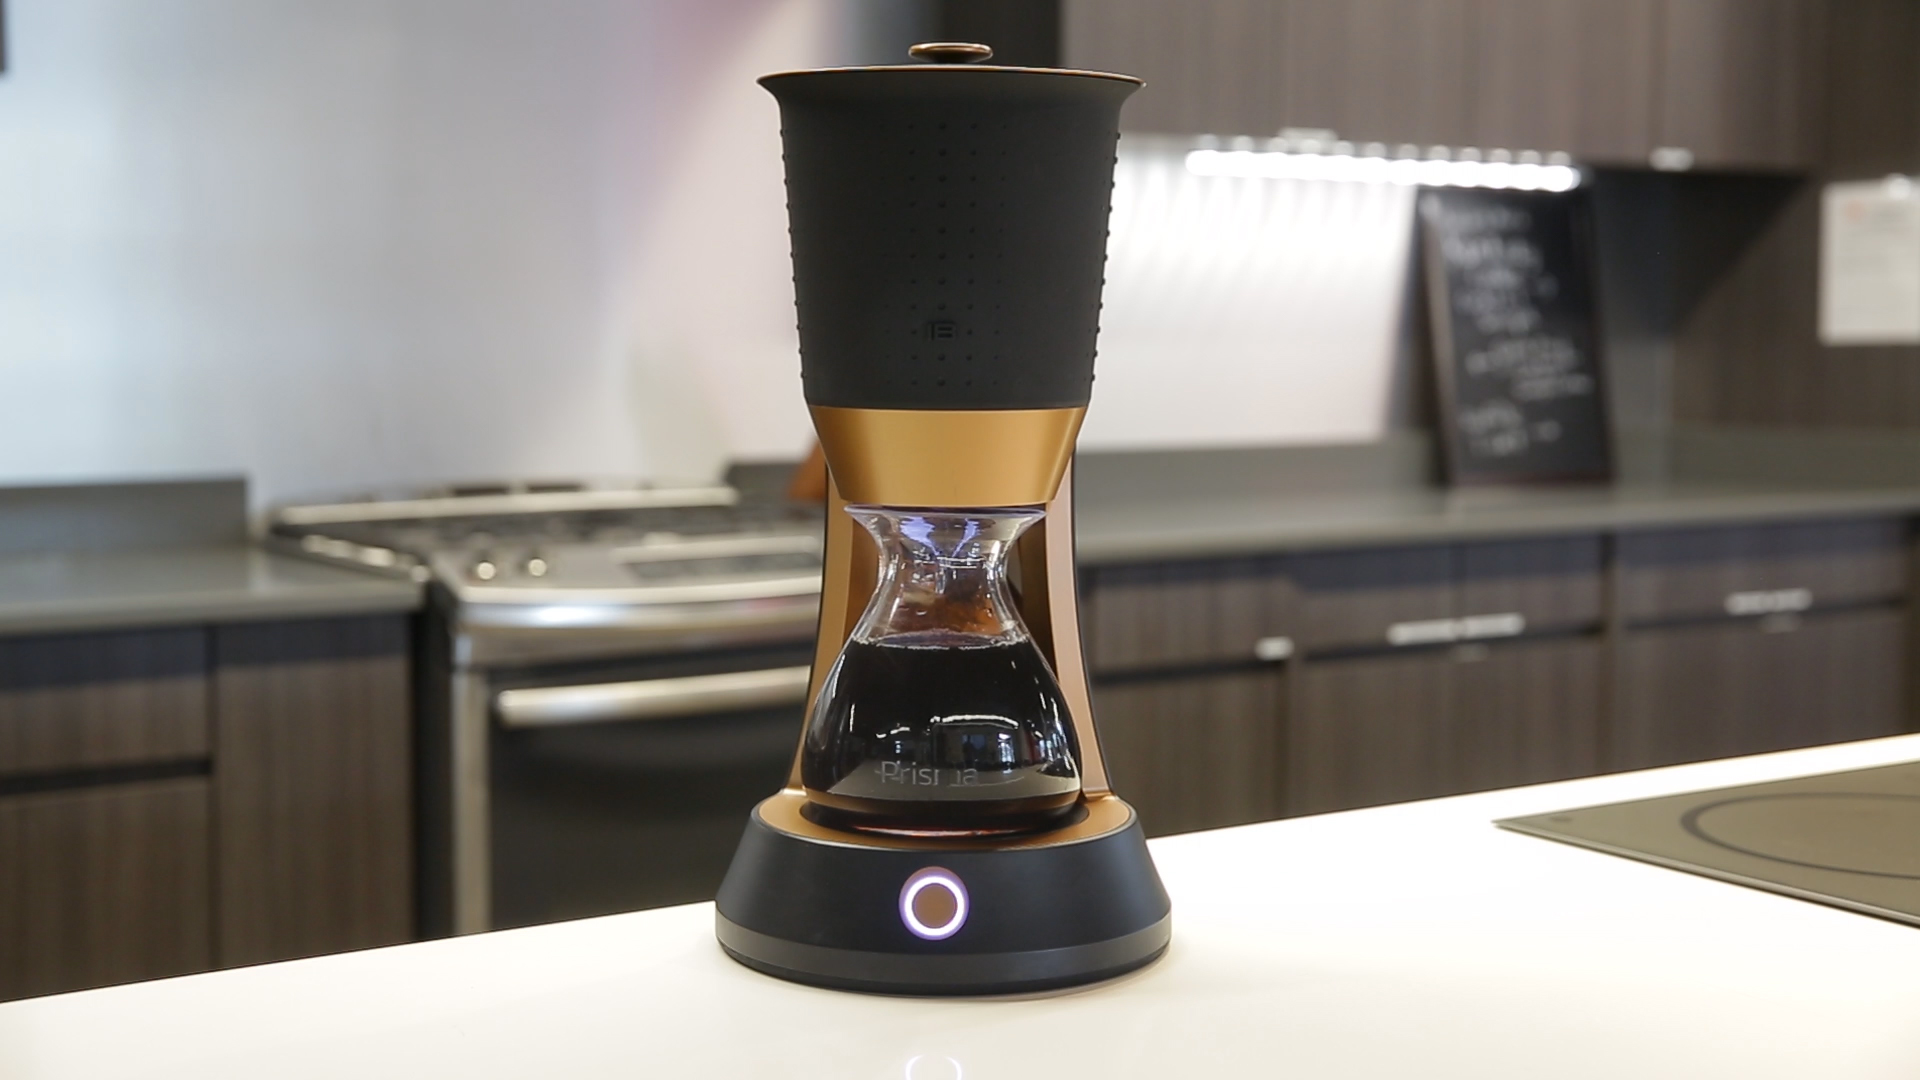 Video: First Build's Prisma makes cold brew coffee in just ten minutes